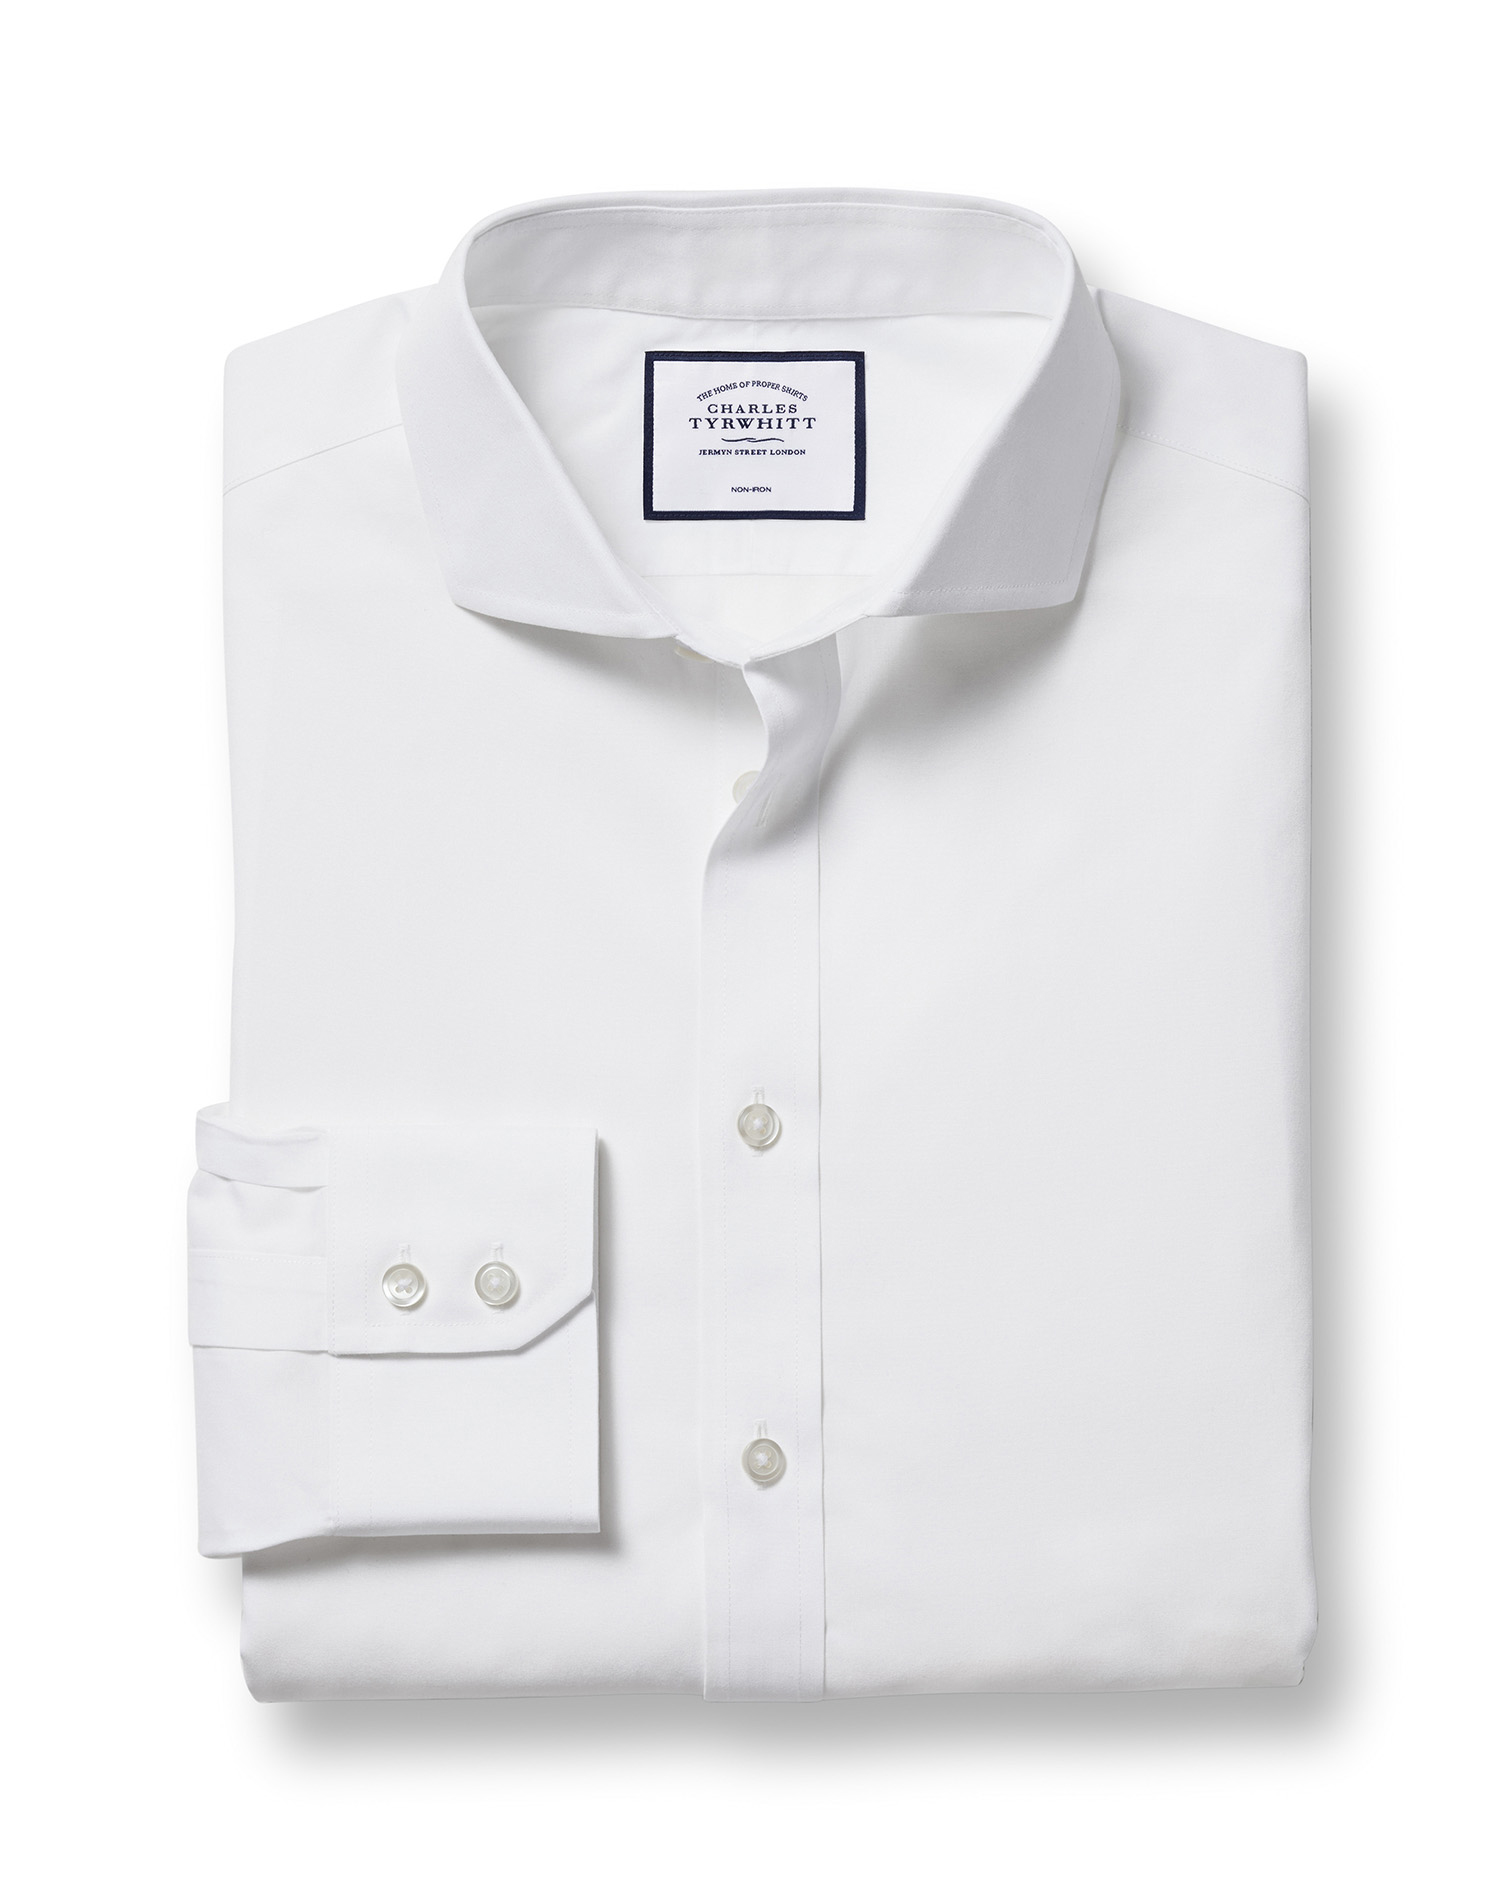 Classic Fit Cutaway Non-Iron Poplin White Cotton Formal Shirt Single Cuff Size 17.5/34 by Charles Ty